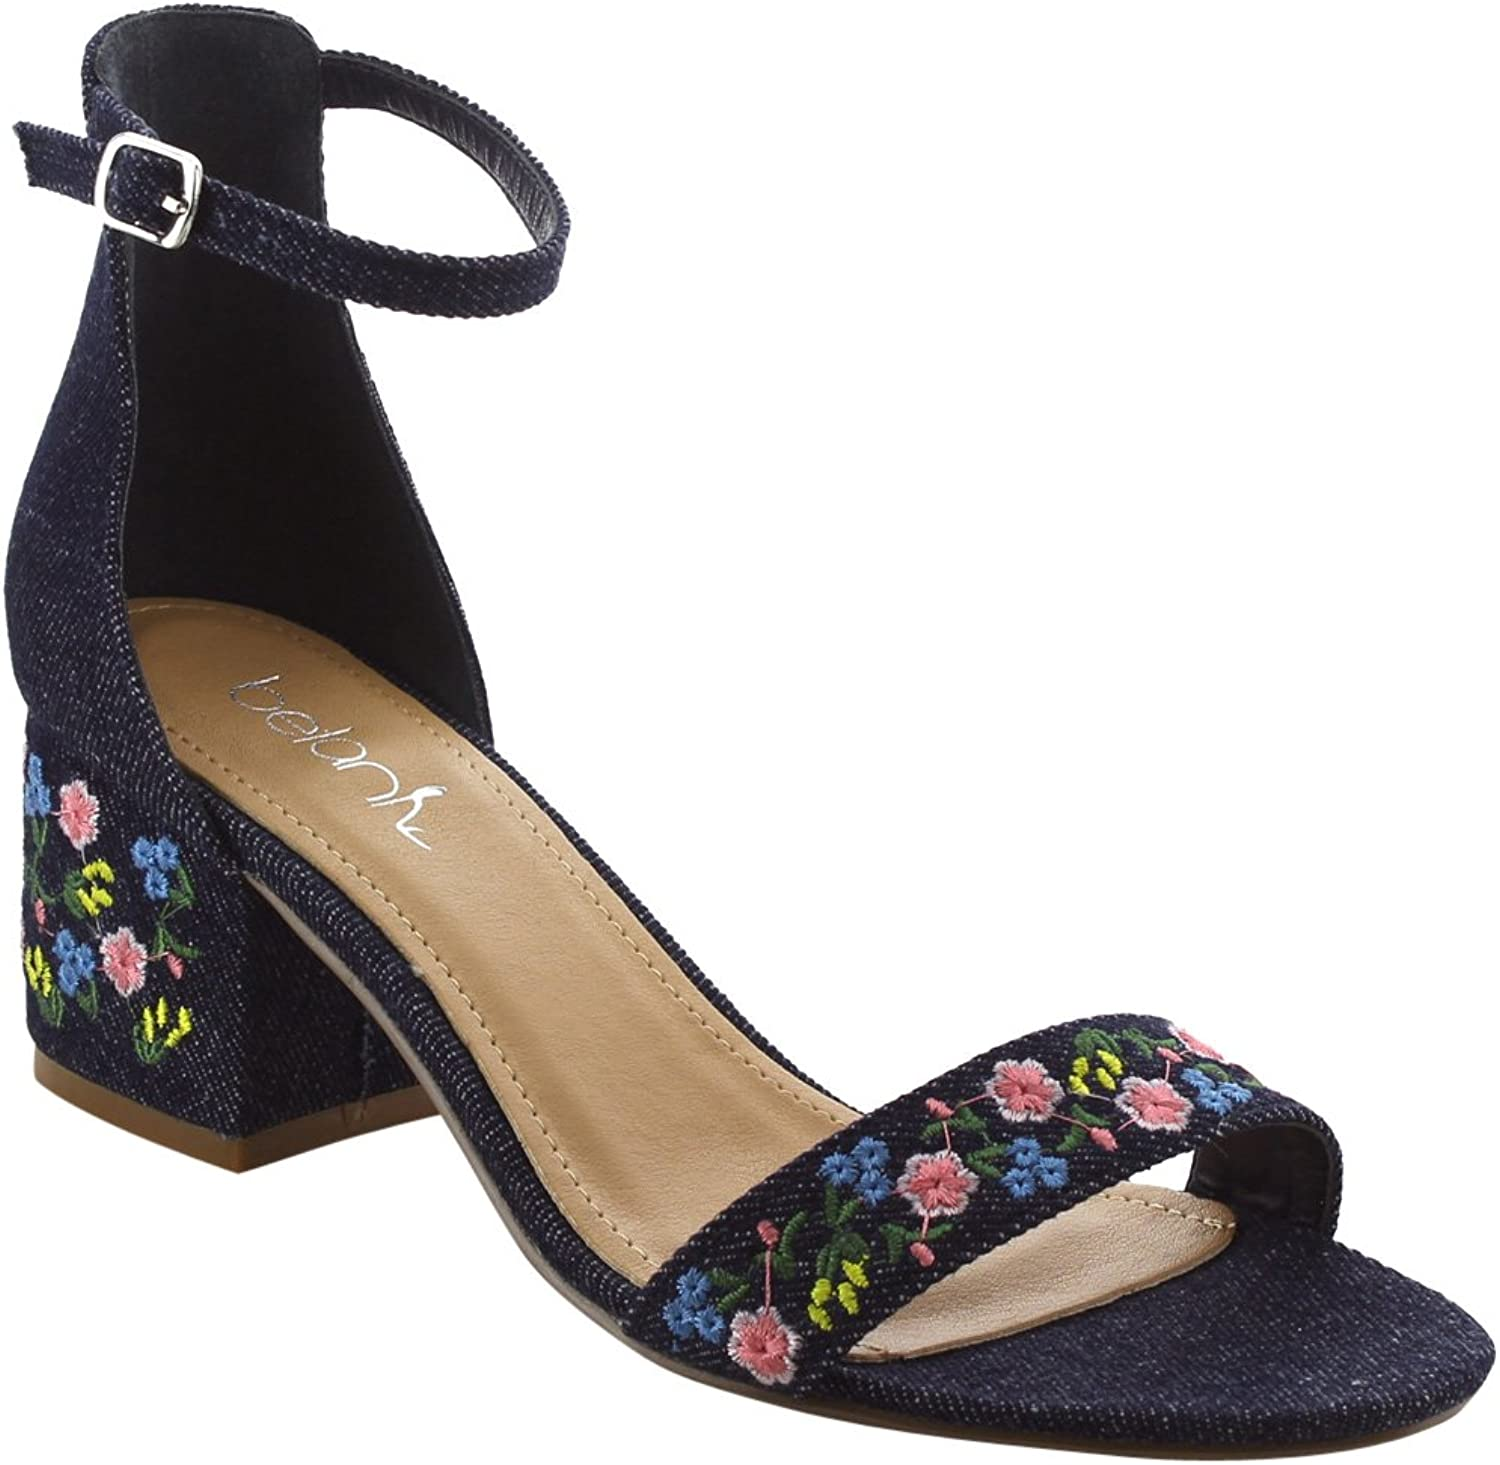 BETANI FK45 Women's Embroidered Buckled Ankle Strap Block Heel Sandals